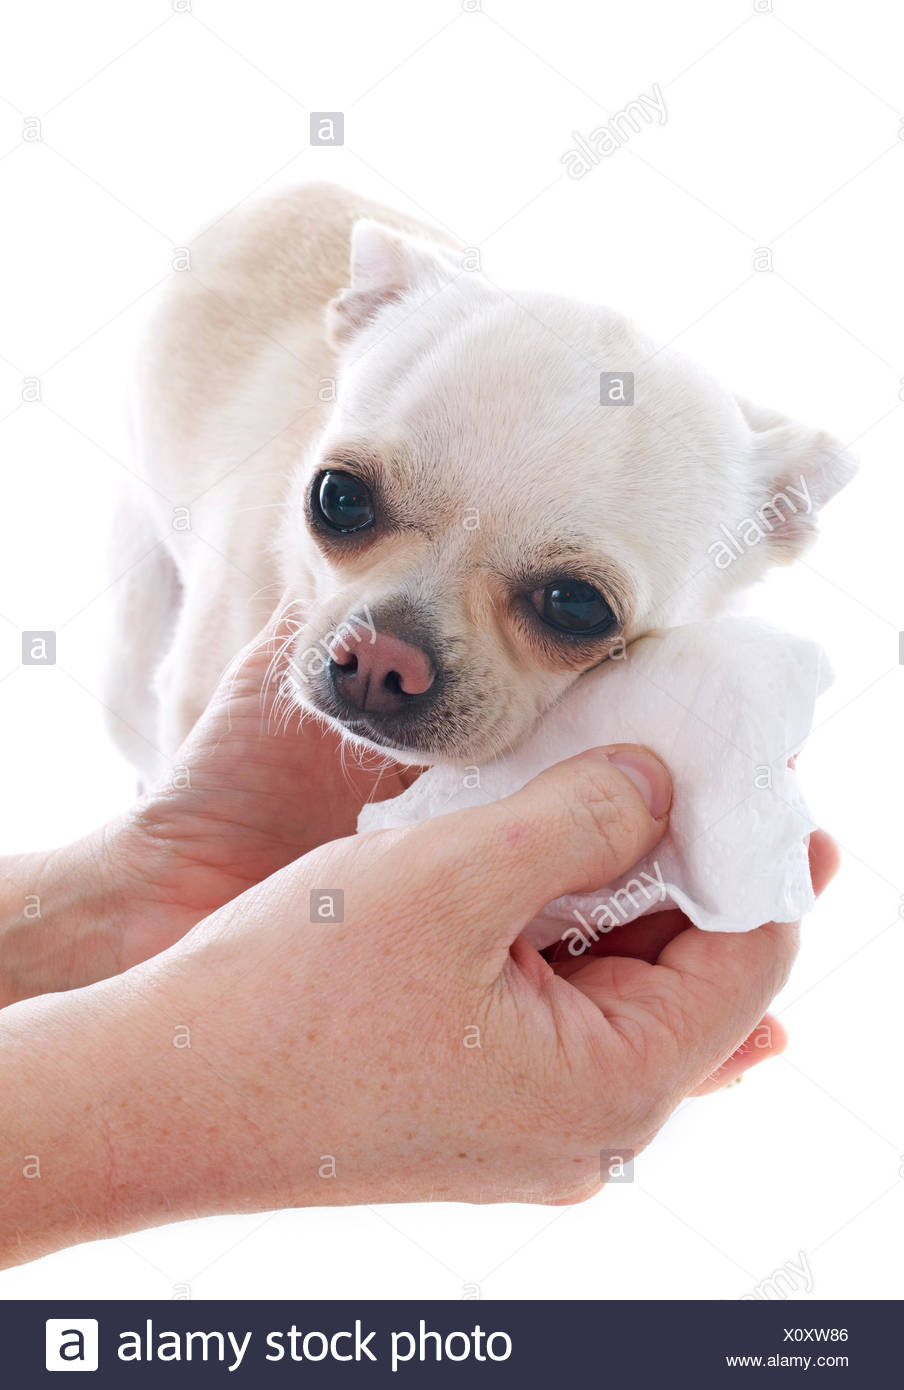 gromming on a chihuahua in front of white background - Stock Image